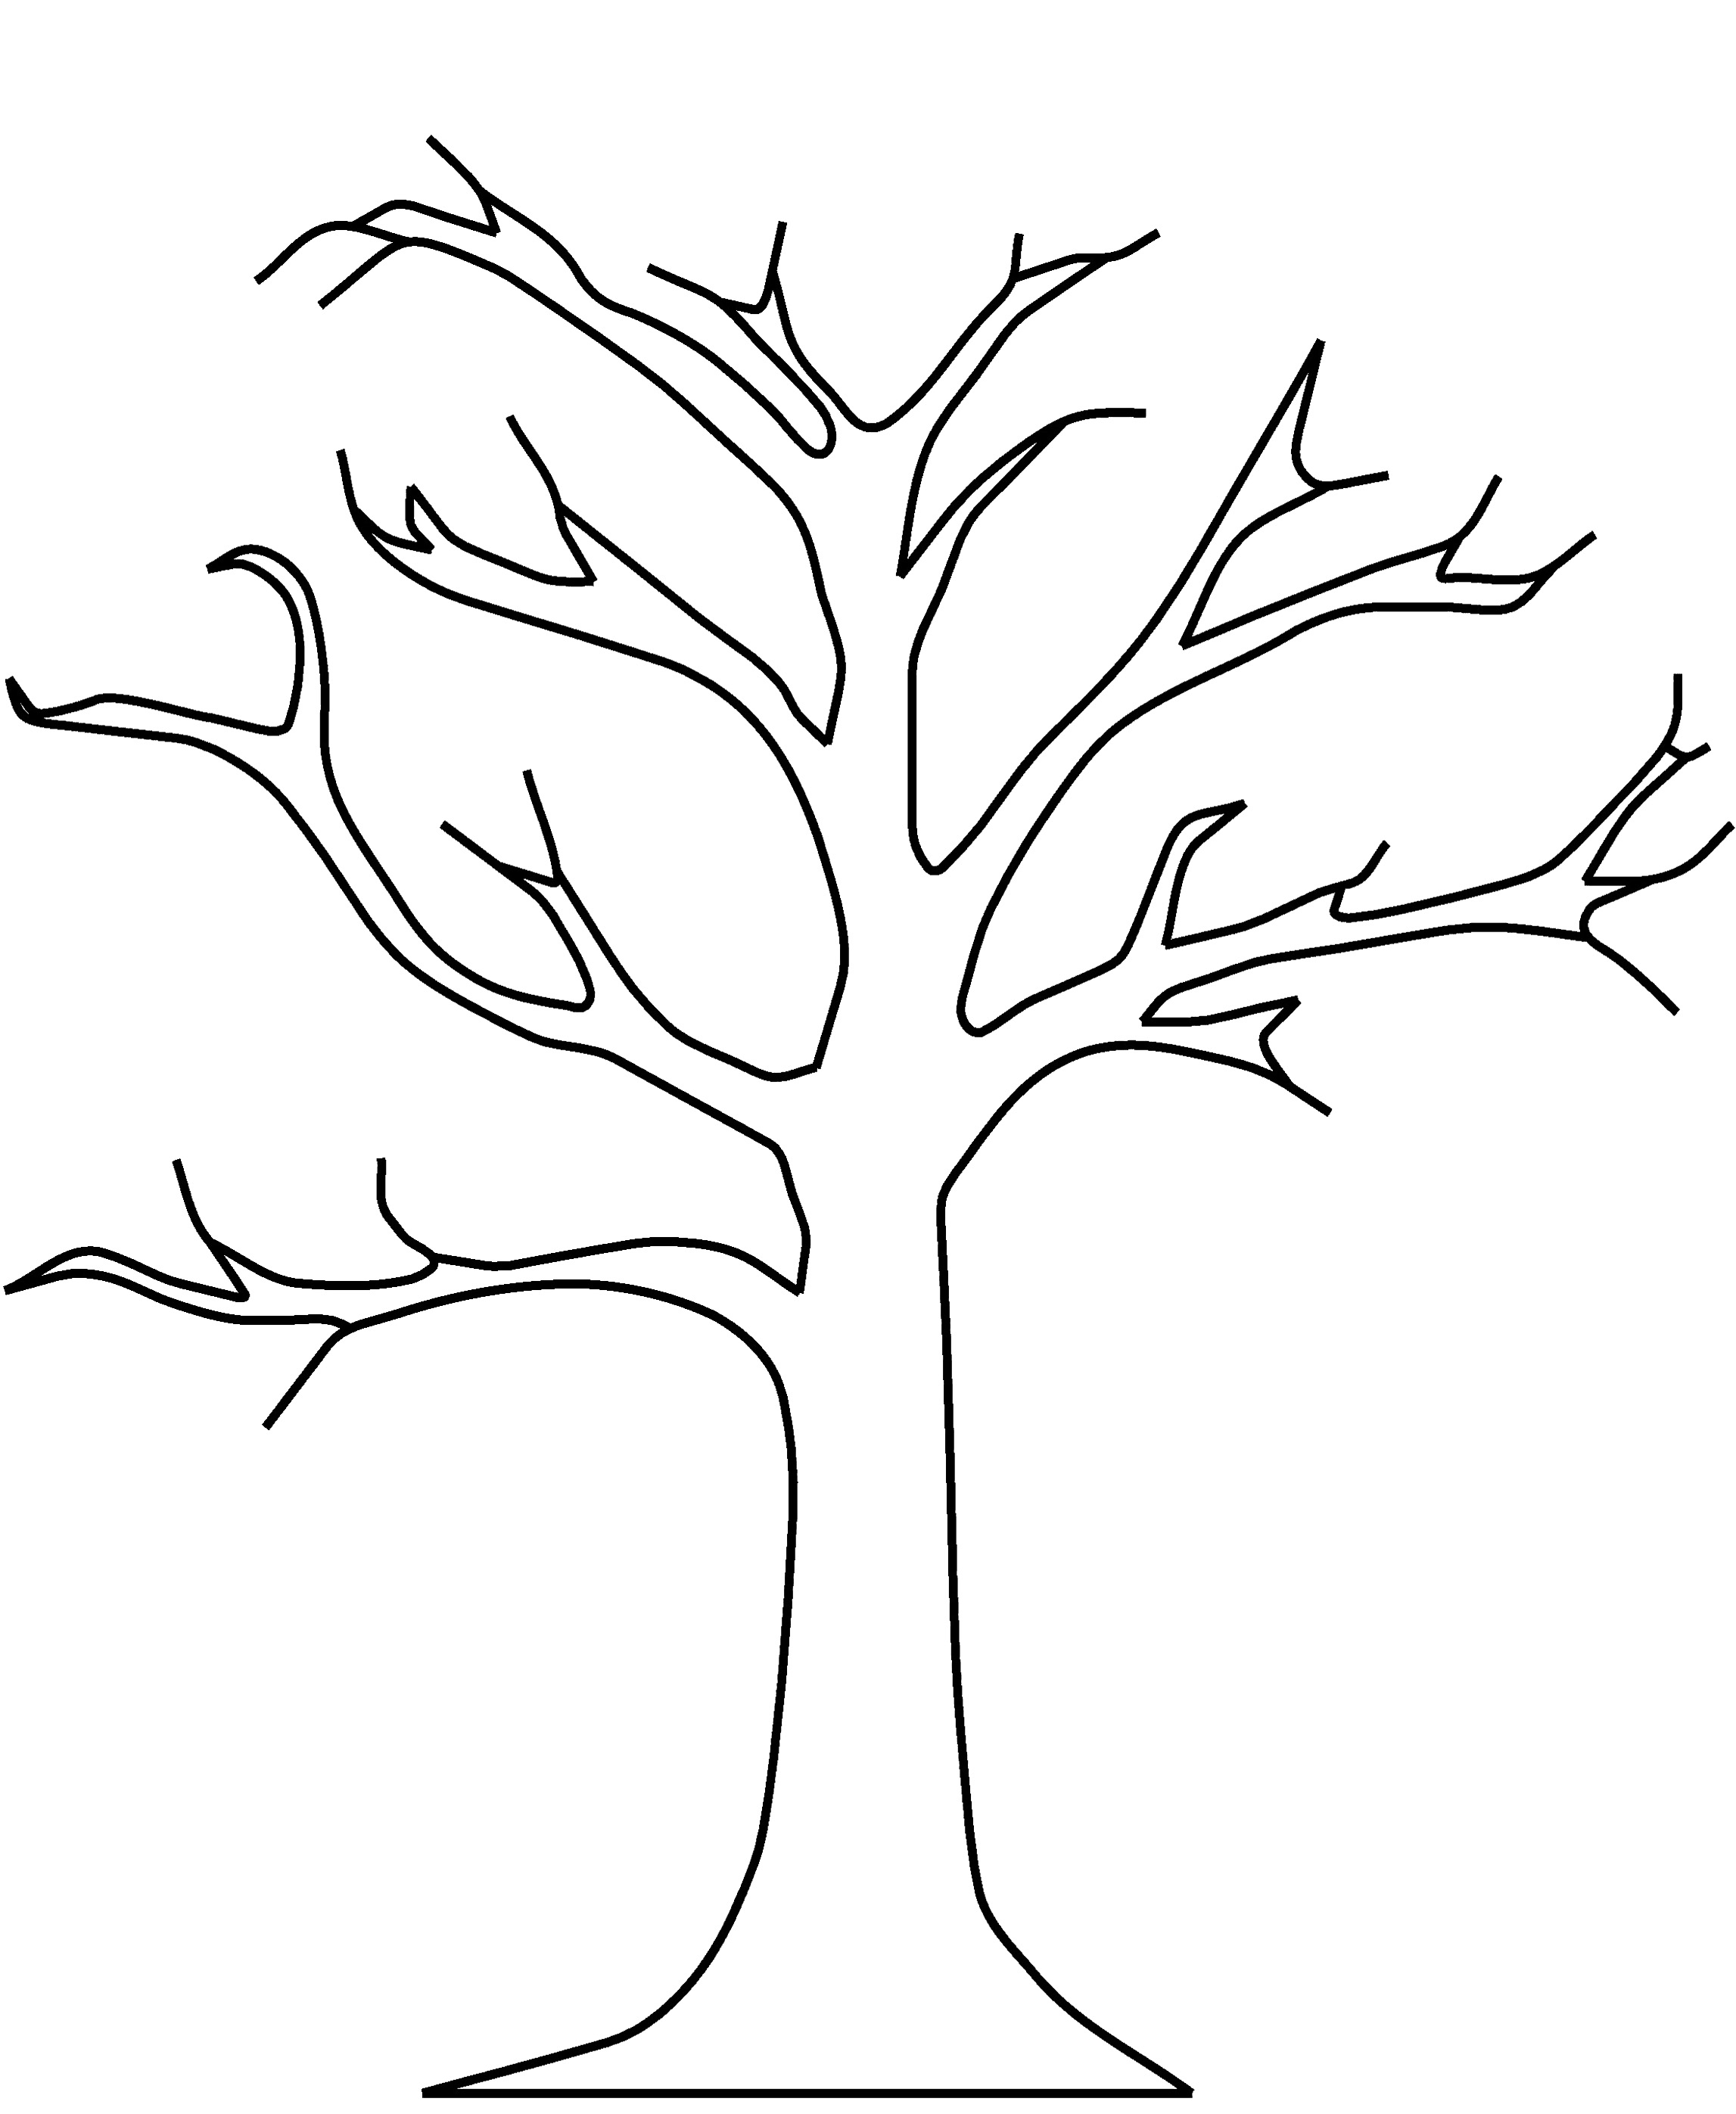 Tree Clipart Black And White No Leaves.